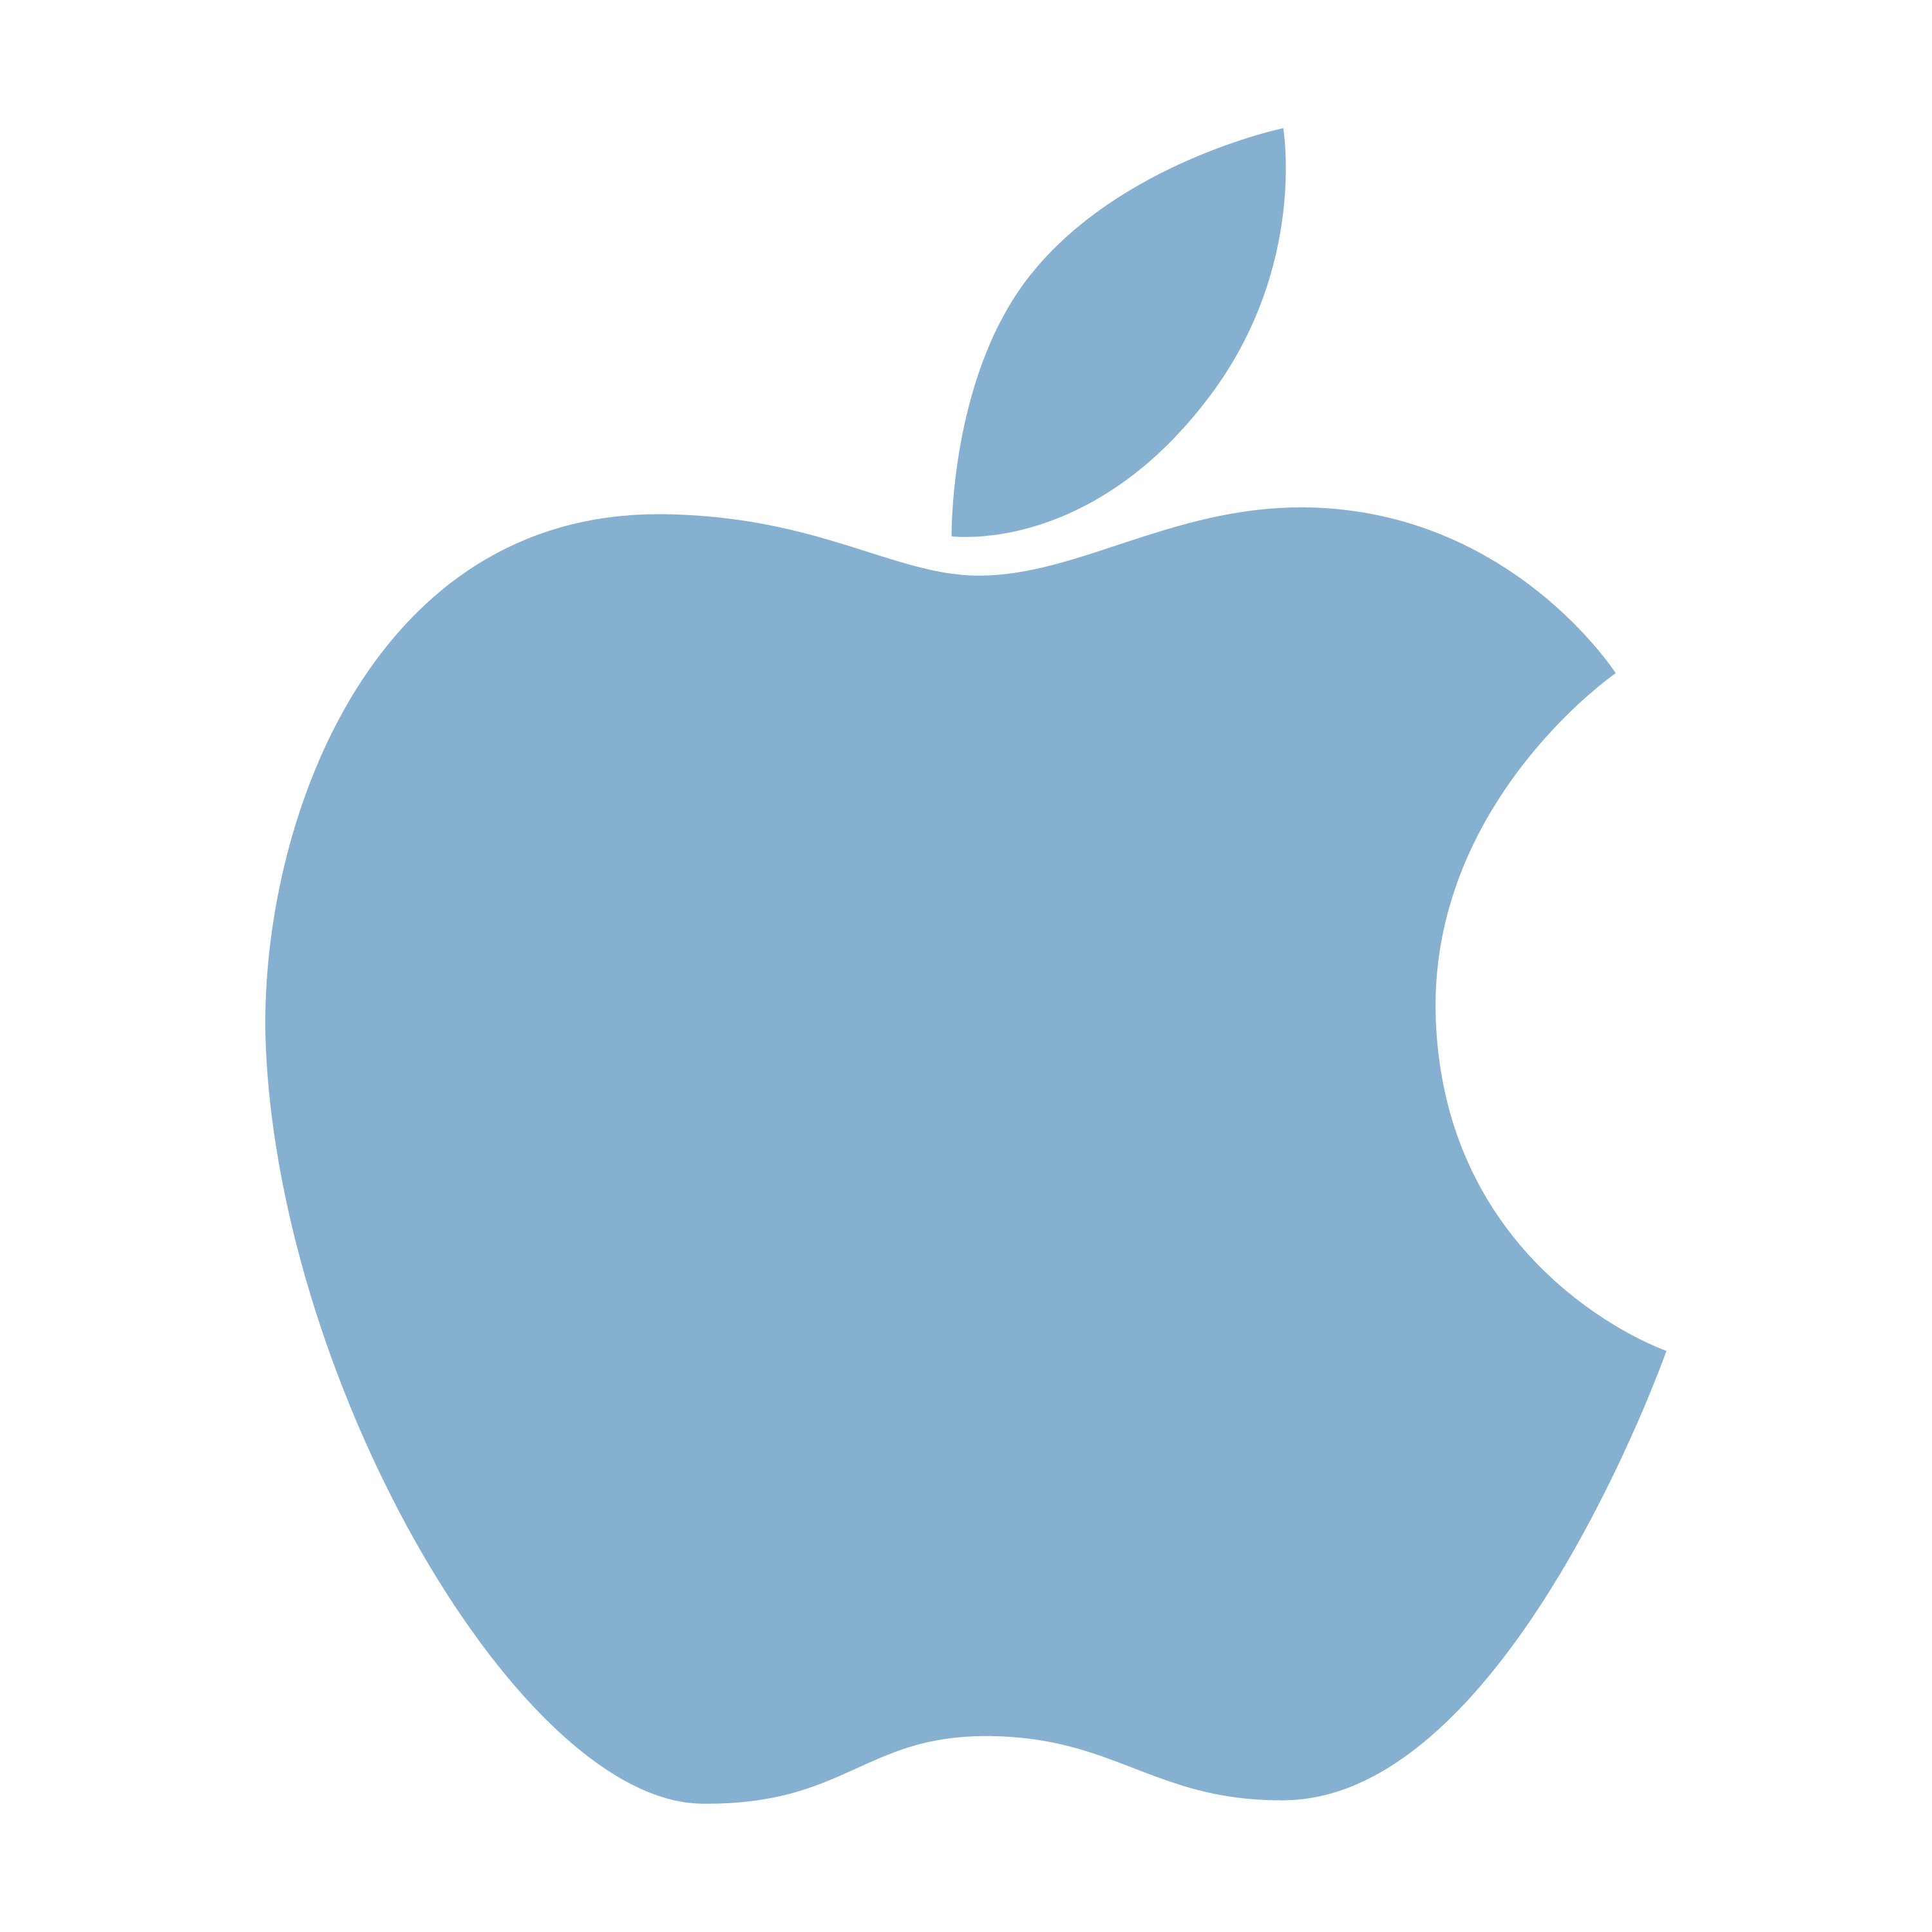 Apple Logo Vector - ClipArt Best